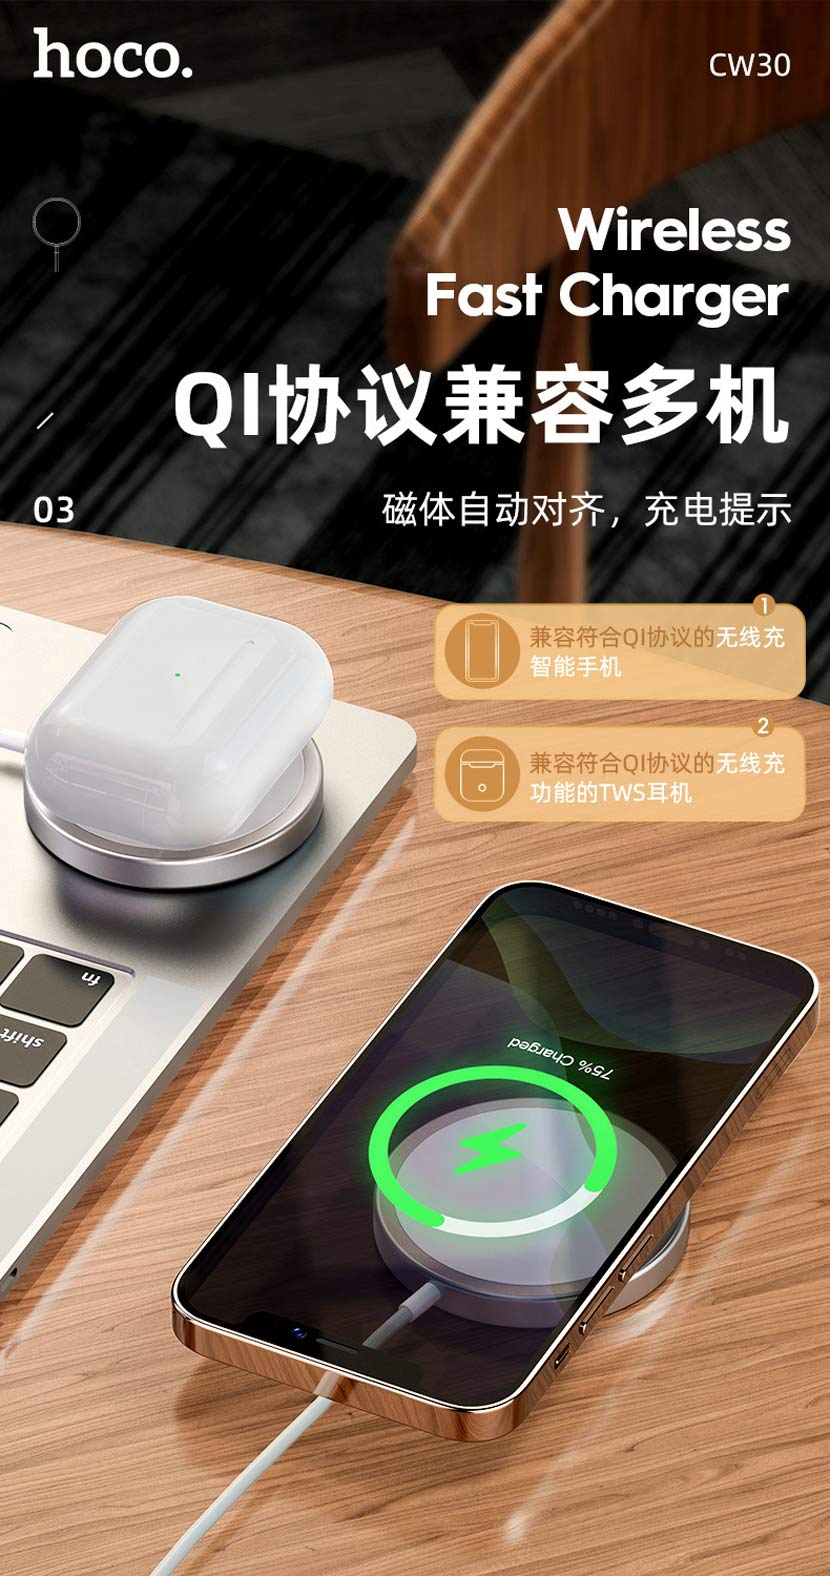 hoco news cw30 original series magnetic wireless fast charger qi cn